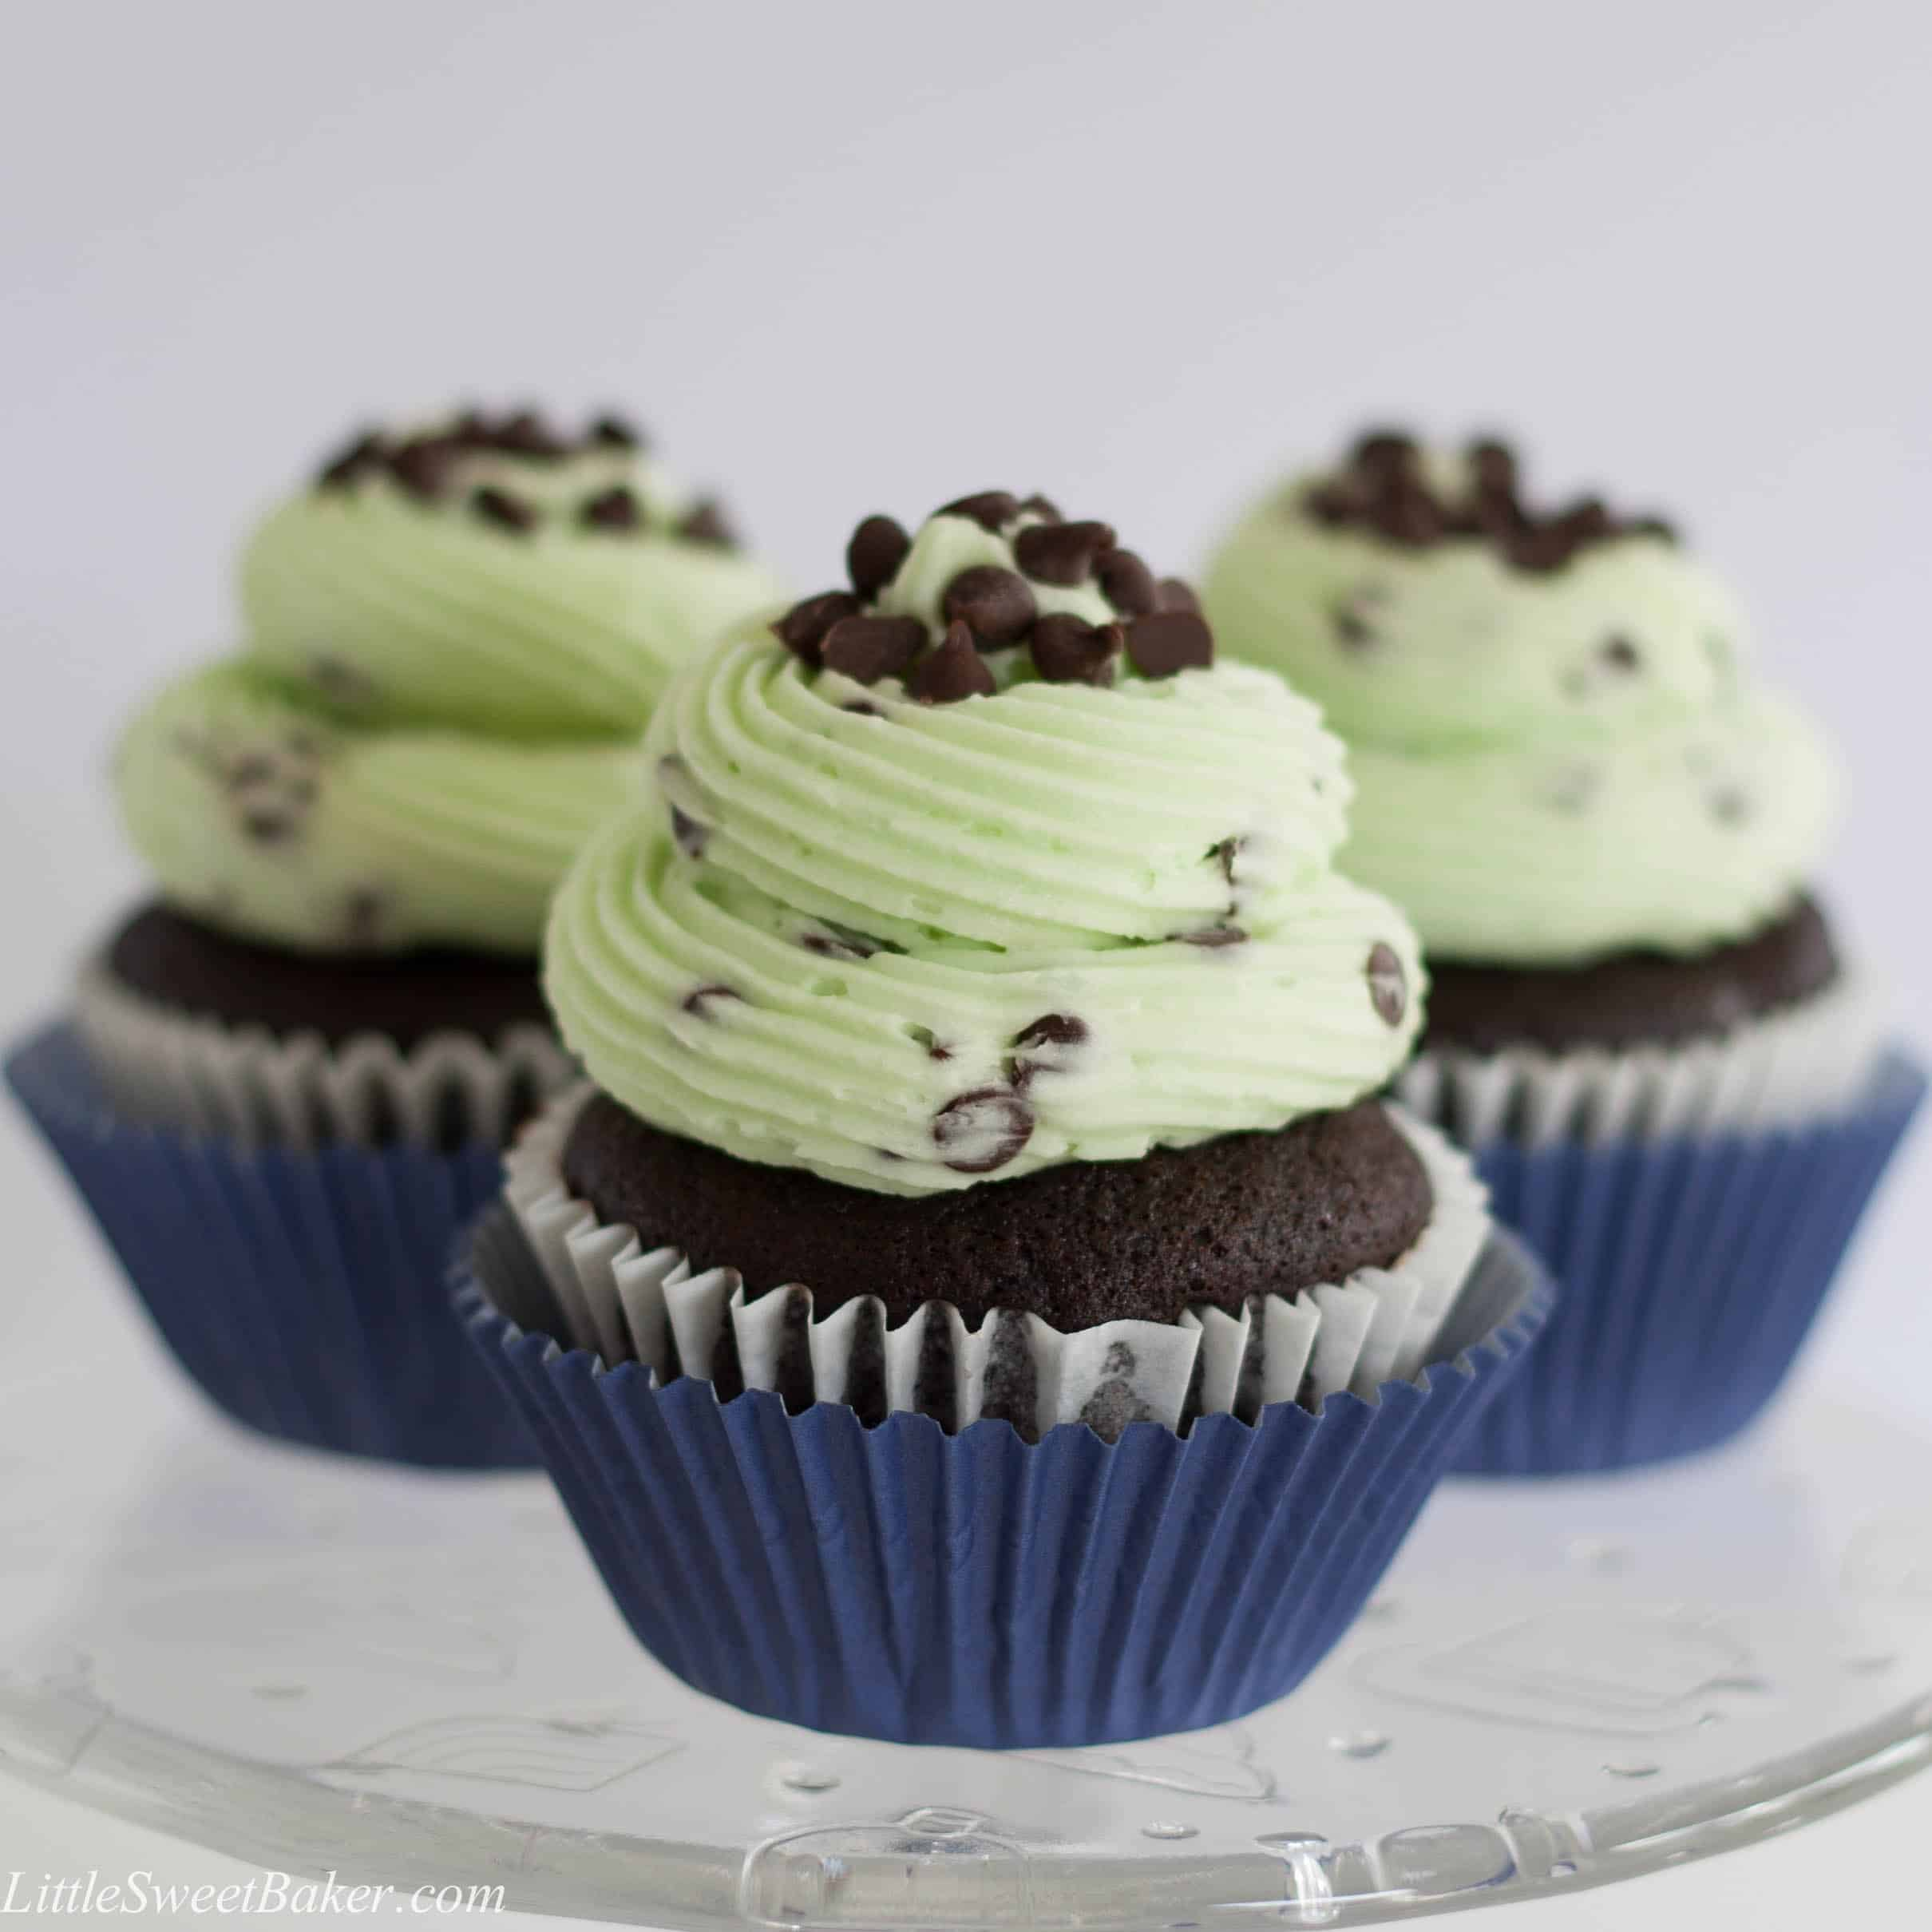 CHOCOLATE MINT CHOCOLATE CHIP CUPCAKES. Moist and fluffy chocolate cupcake with a mint chocolate chip buttercream. Taste like the popular ice cream flavor.